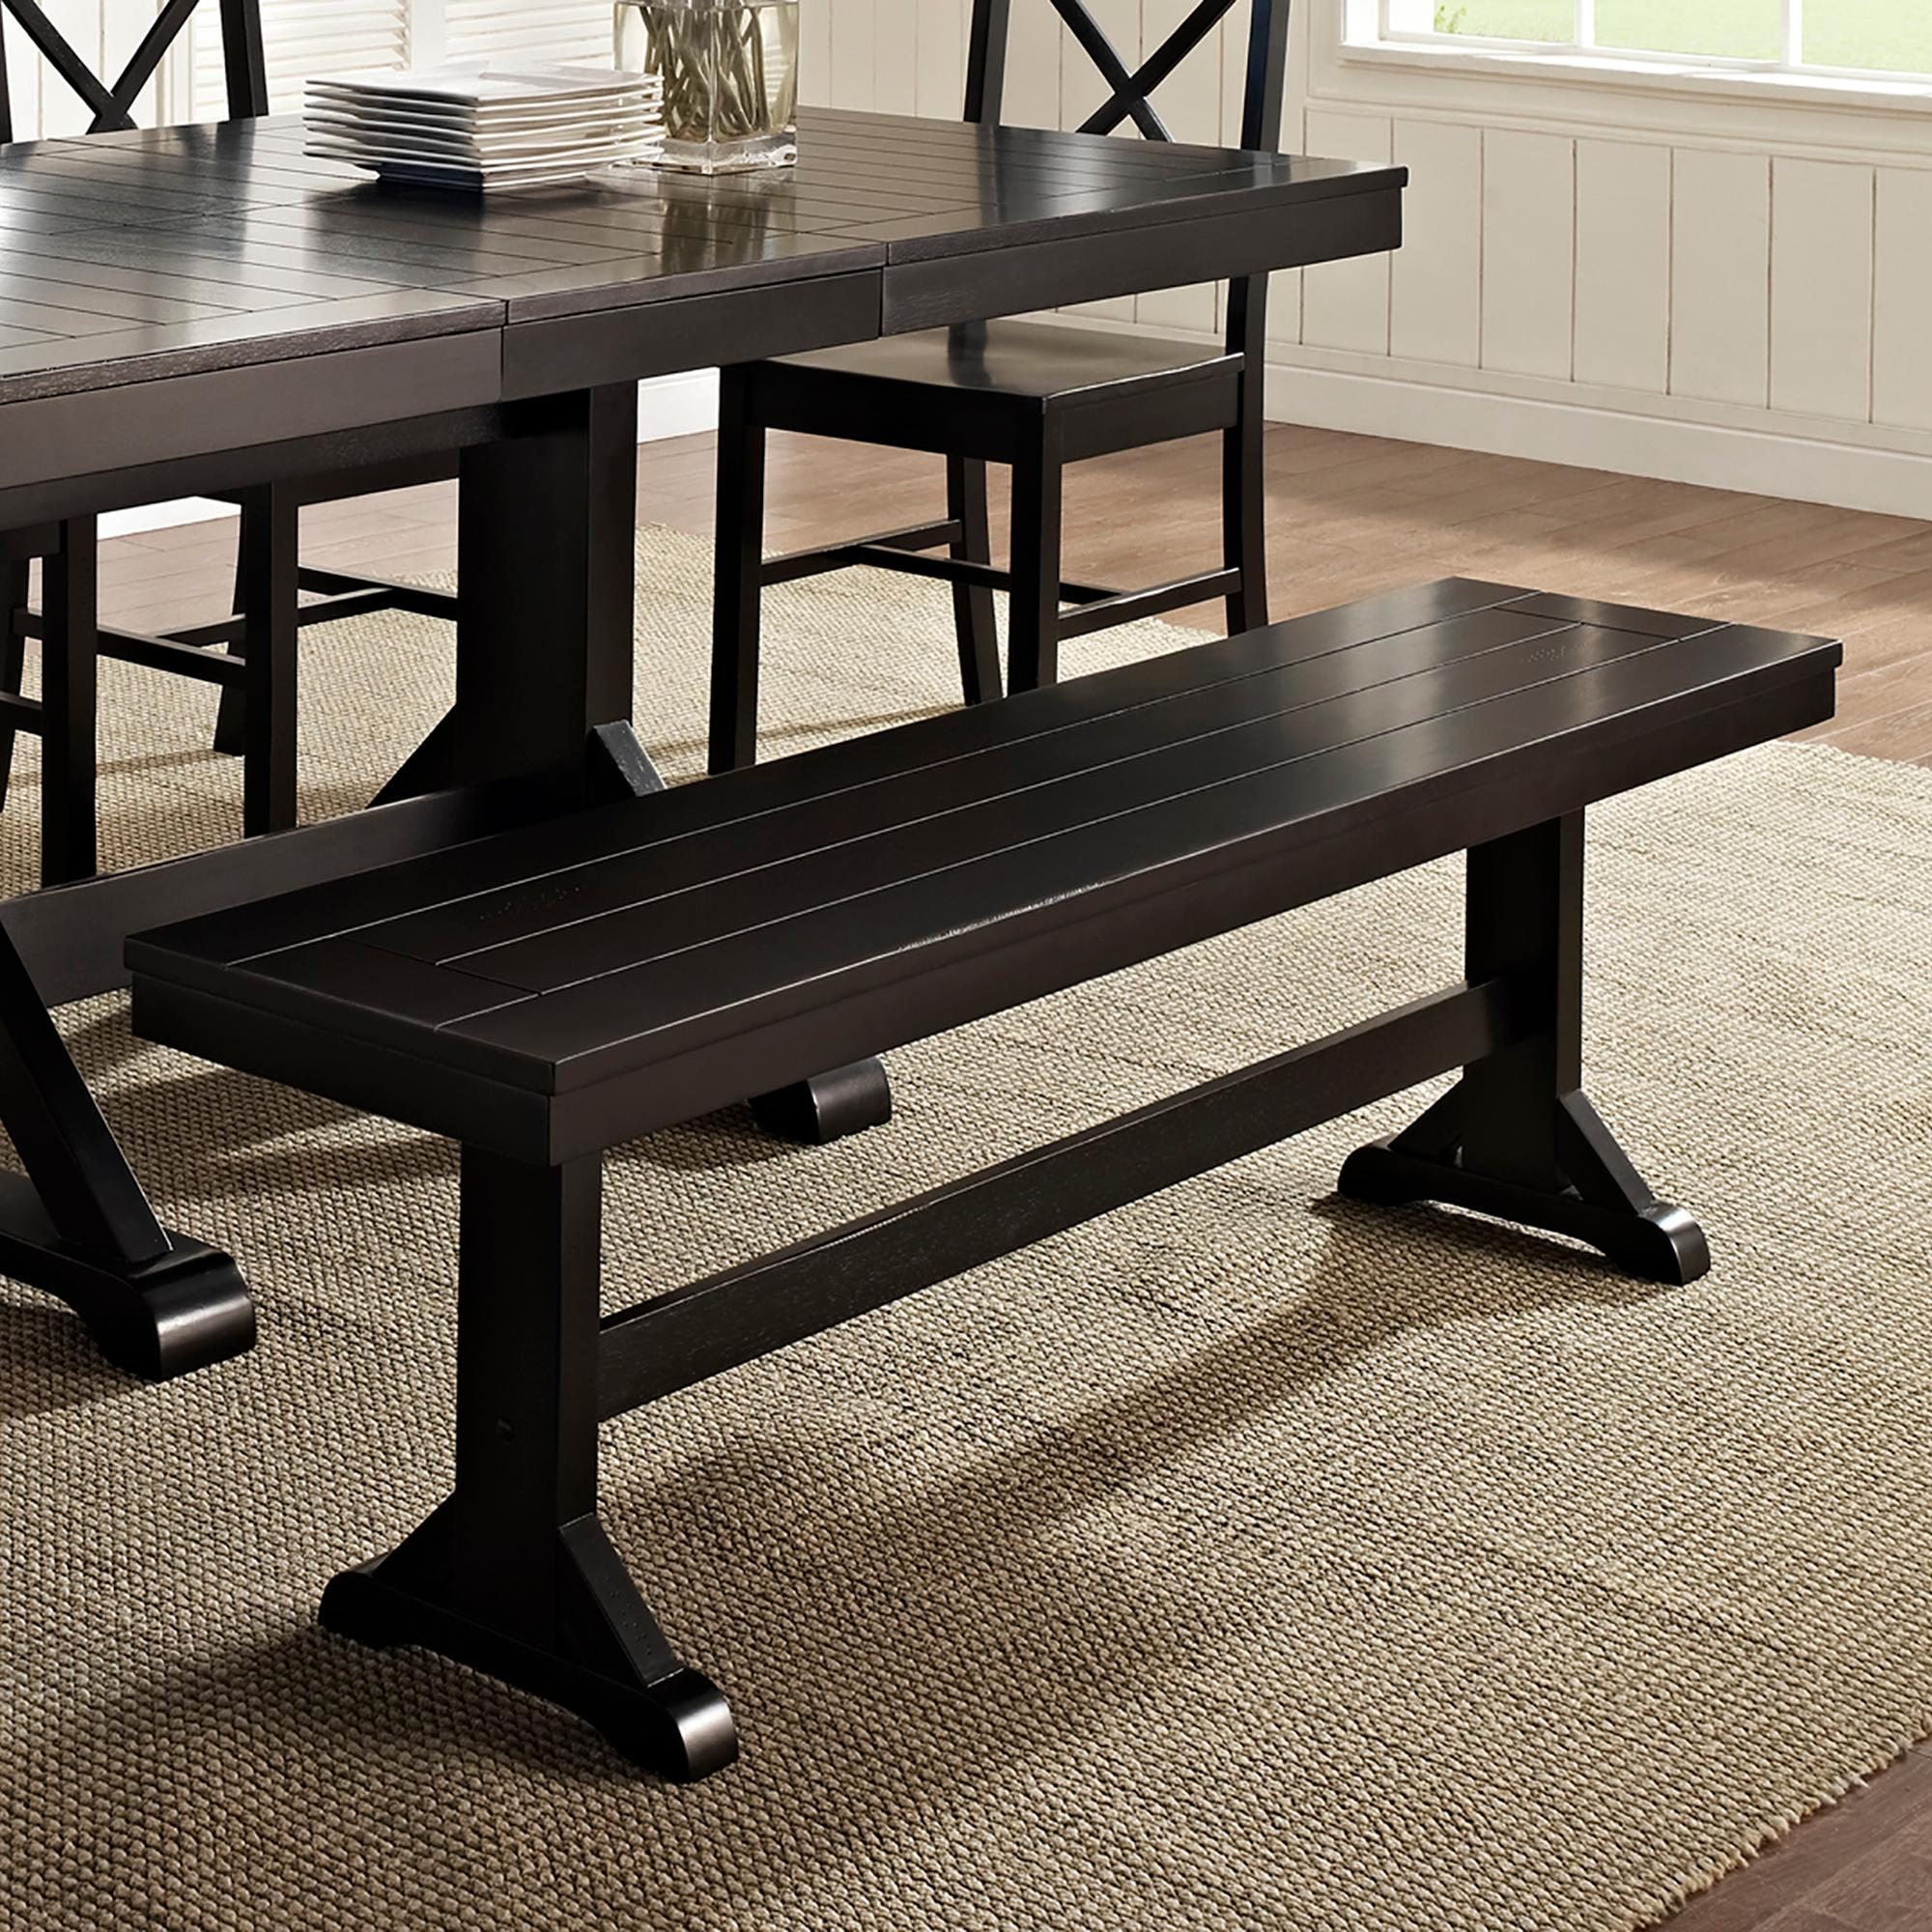 Black Dining Room Table And Chairs: WE Furniture Solid Wood Black Dining Bench